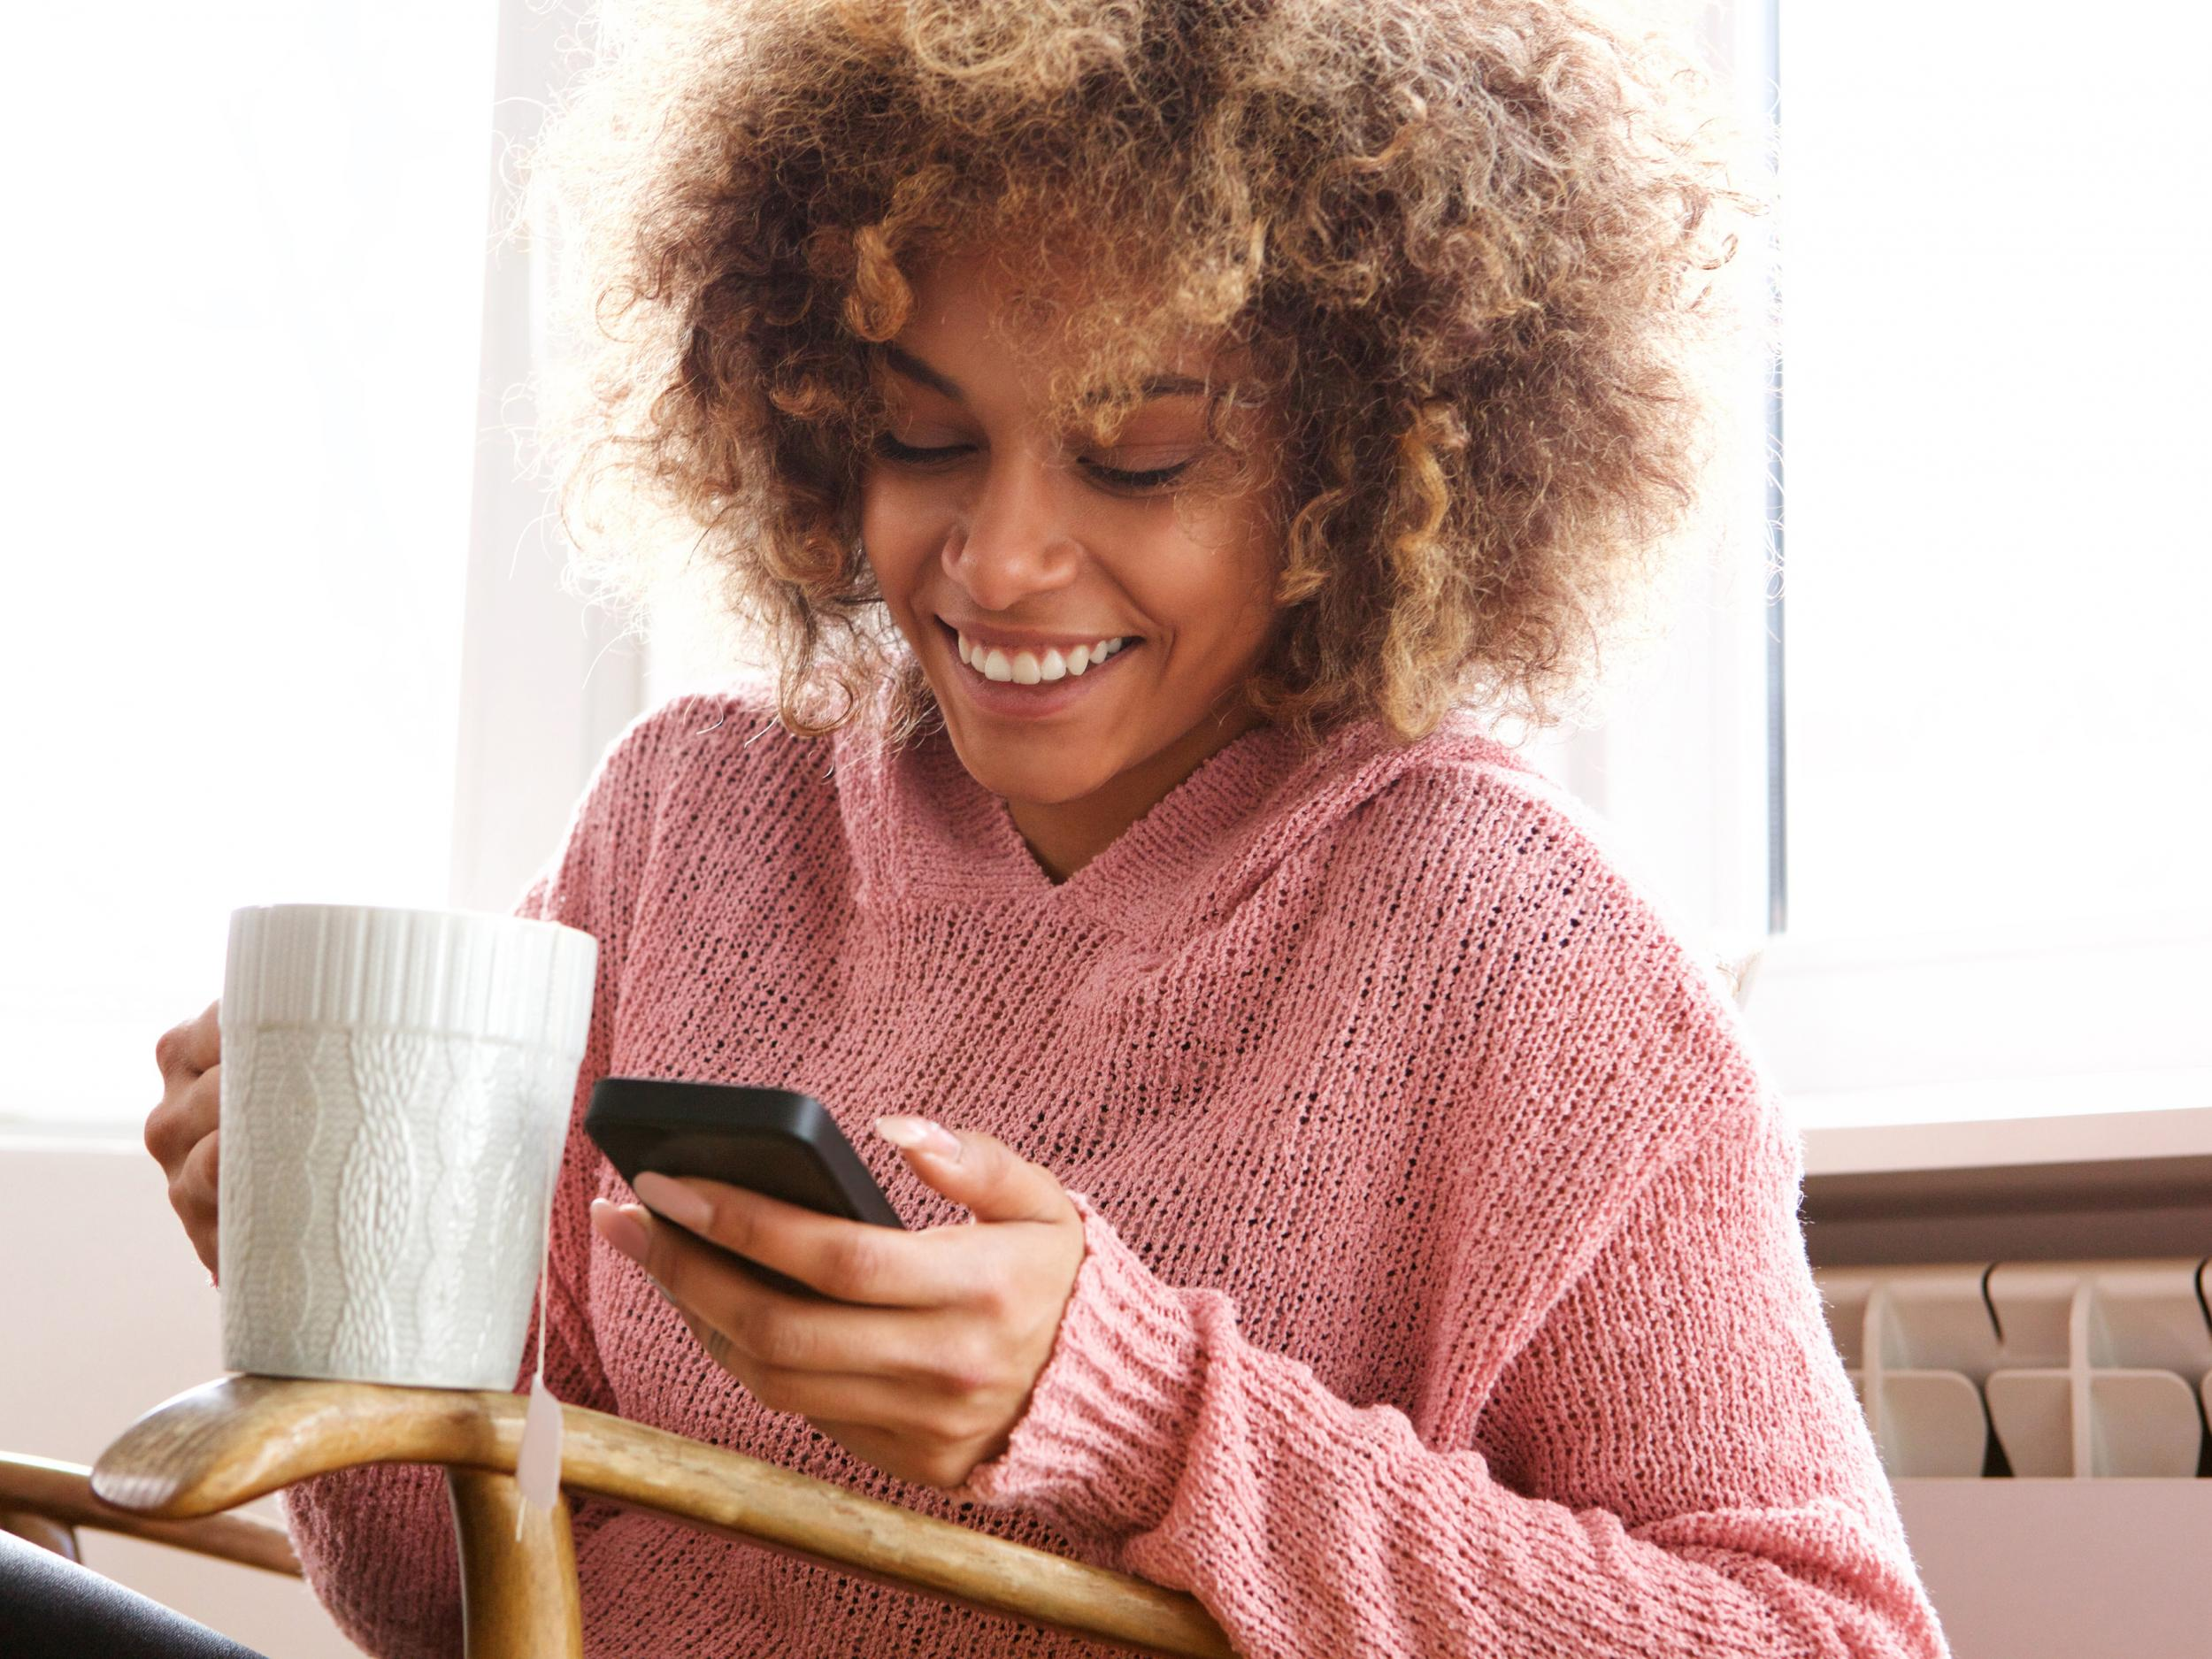 8 best mindfulness apps | The Independent